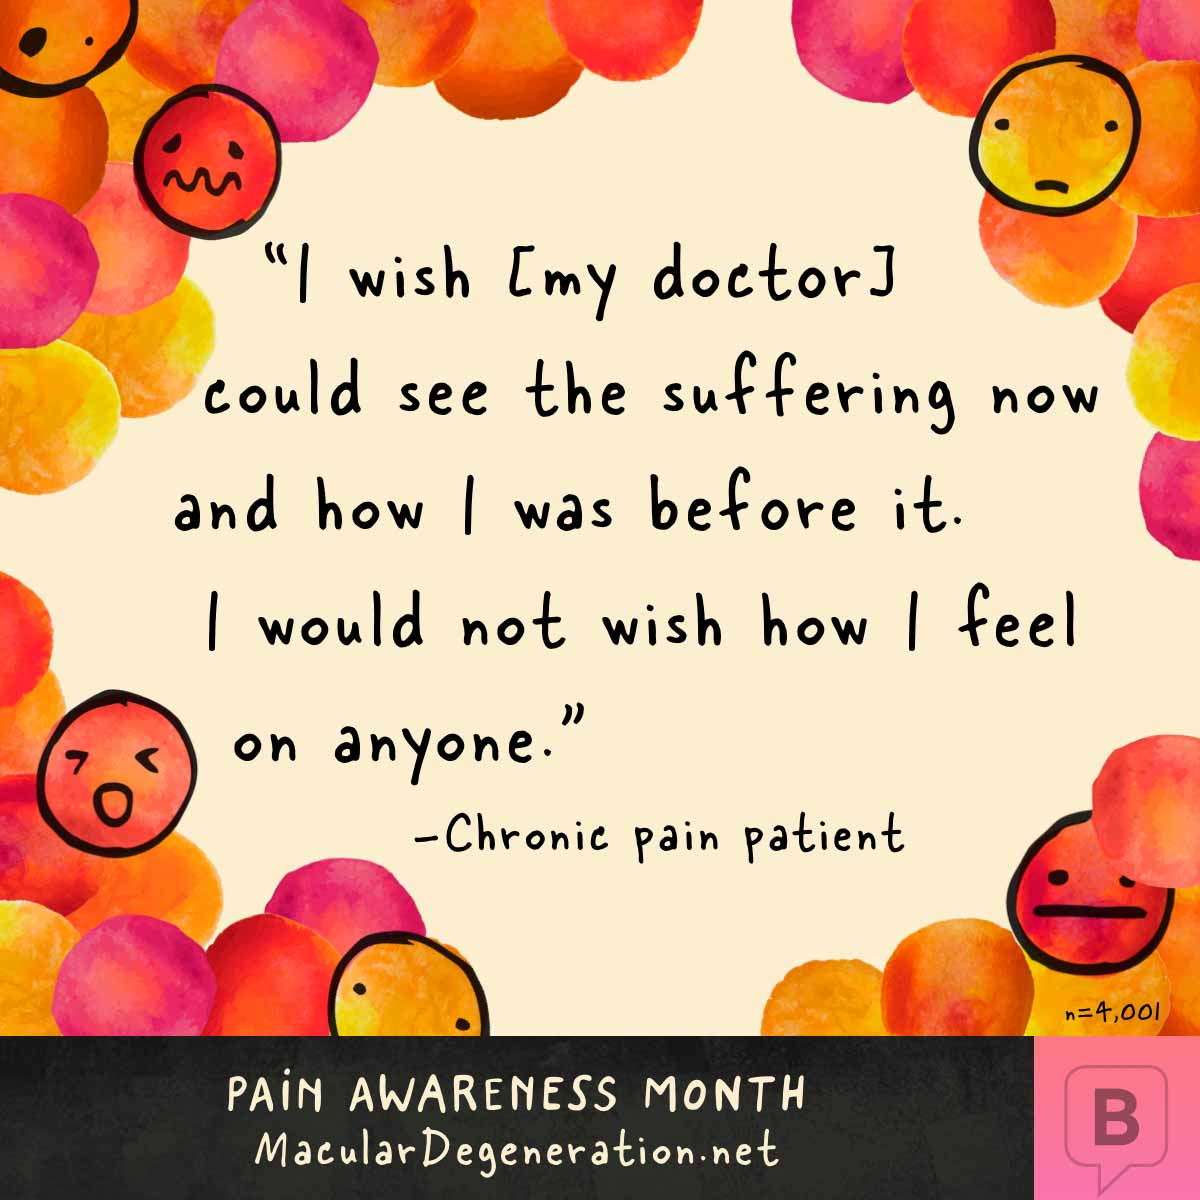 Quote: I wish my doctor could see the suffering now and how I was before it. I would not wish how I feel on anyone